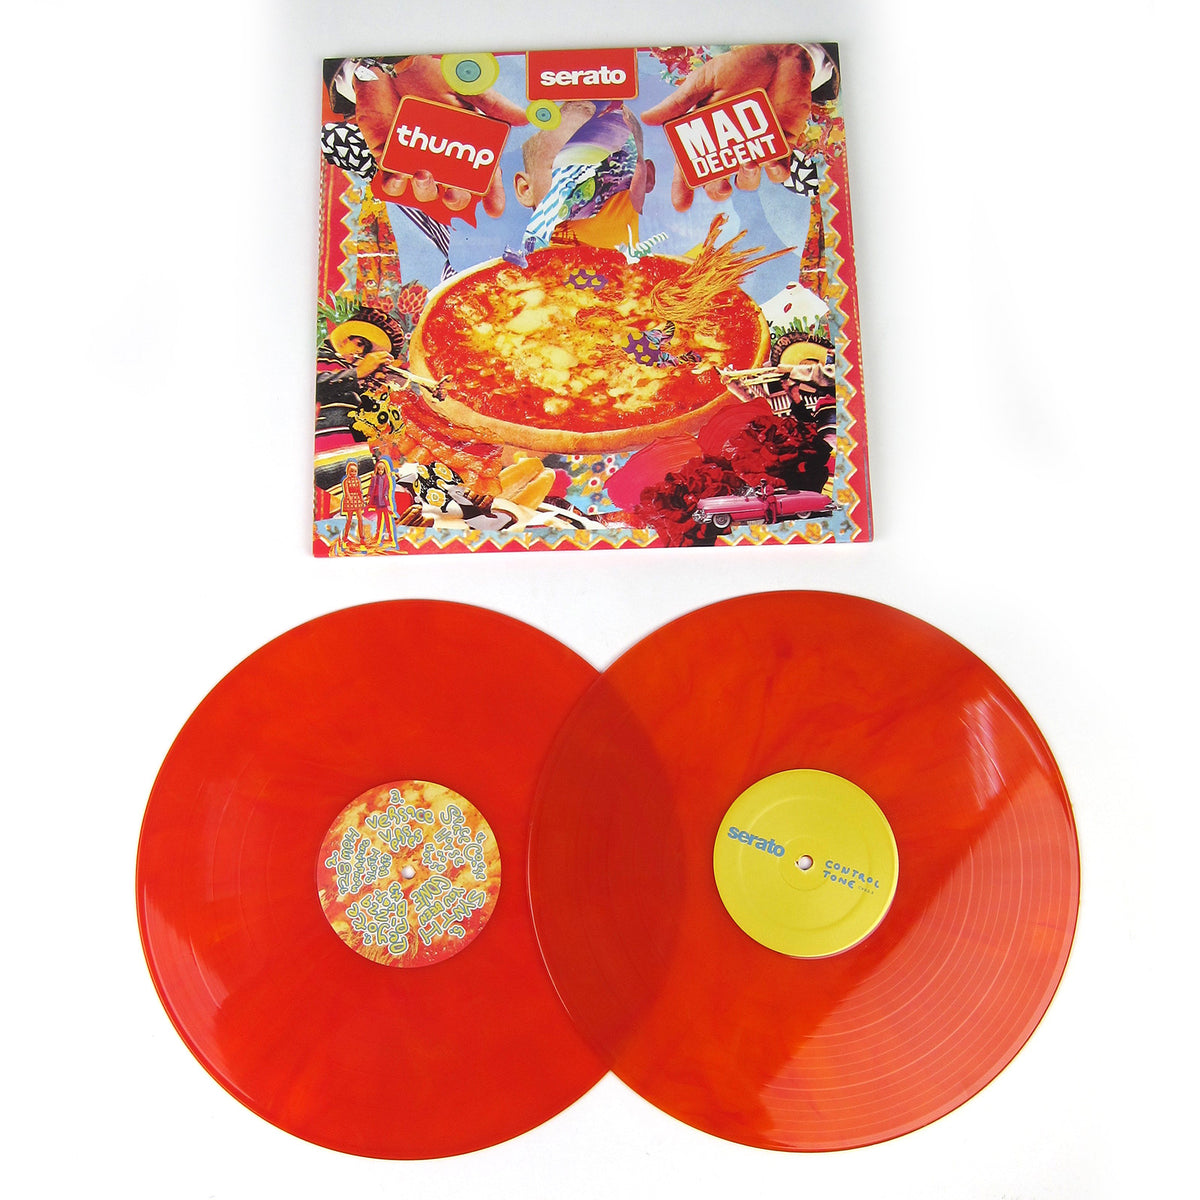 Mad Decent: Peyote Pizza Braykz - A Mad Decent x Thump x Serato Collaboration Control Vinyl (Colored Vinyl) Vinyl 2LP